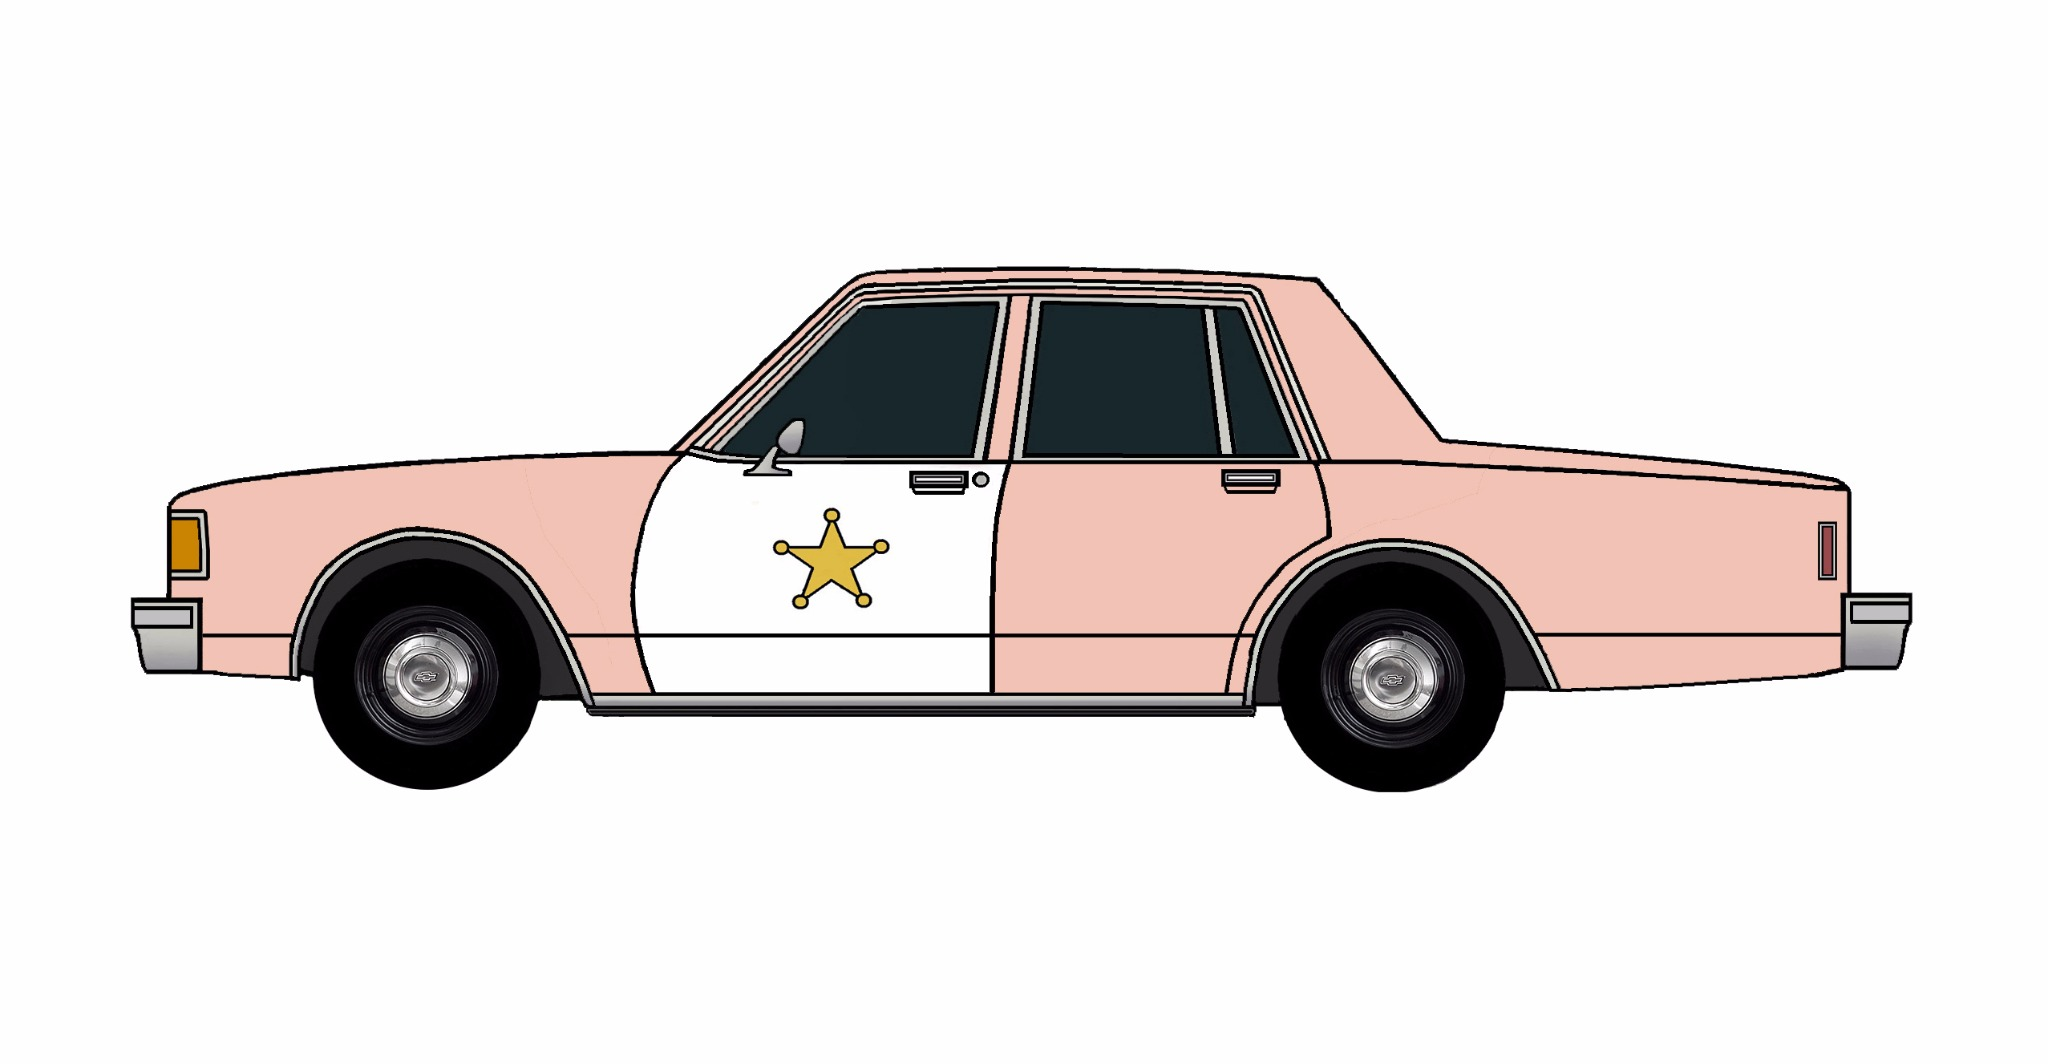 1986 Chevy Caprice 9C1 ROSE PINK